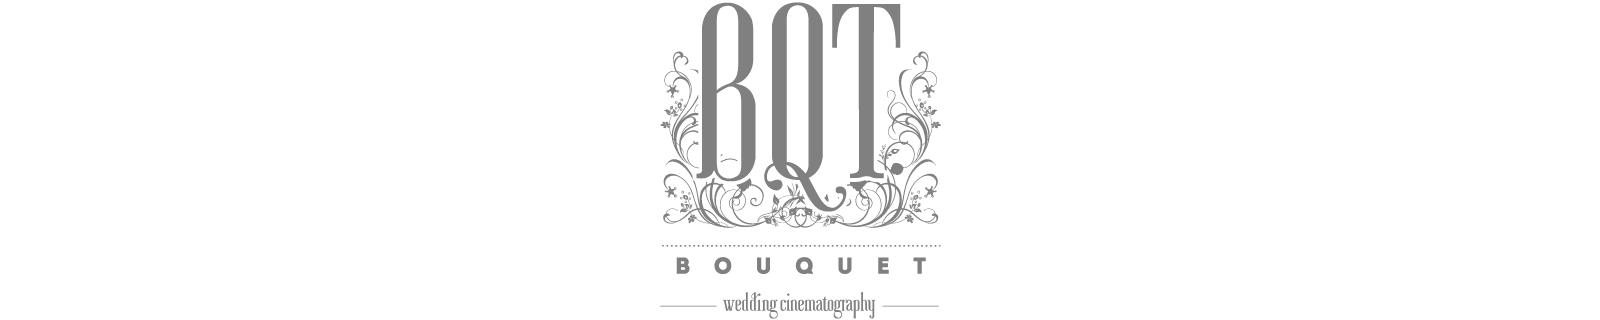 Bouquet Wedding Cinematography